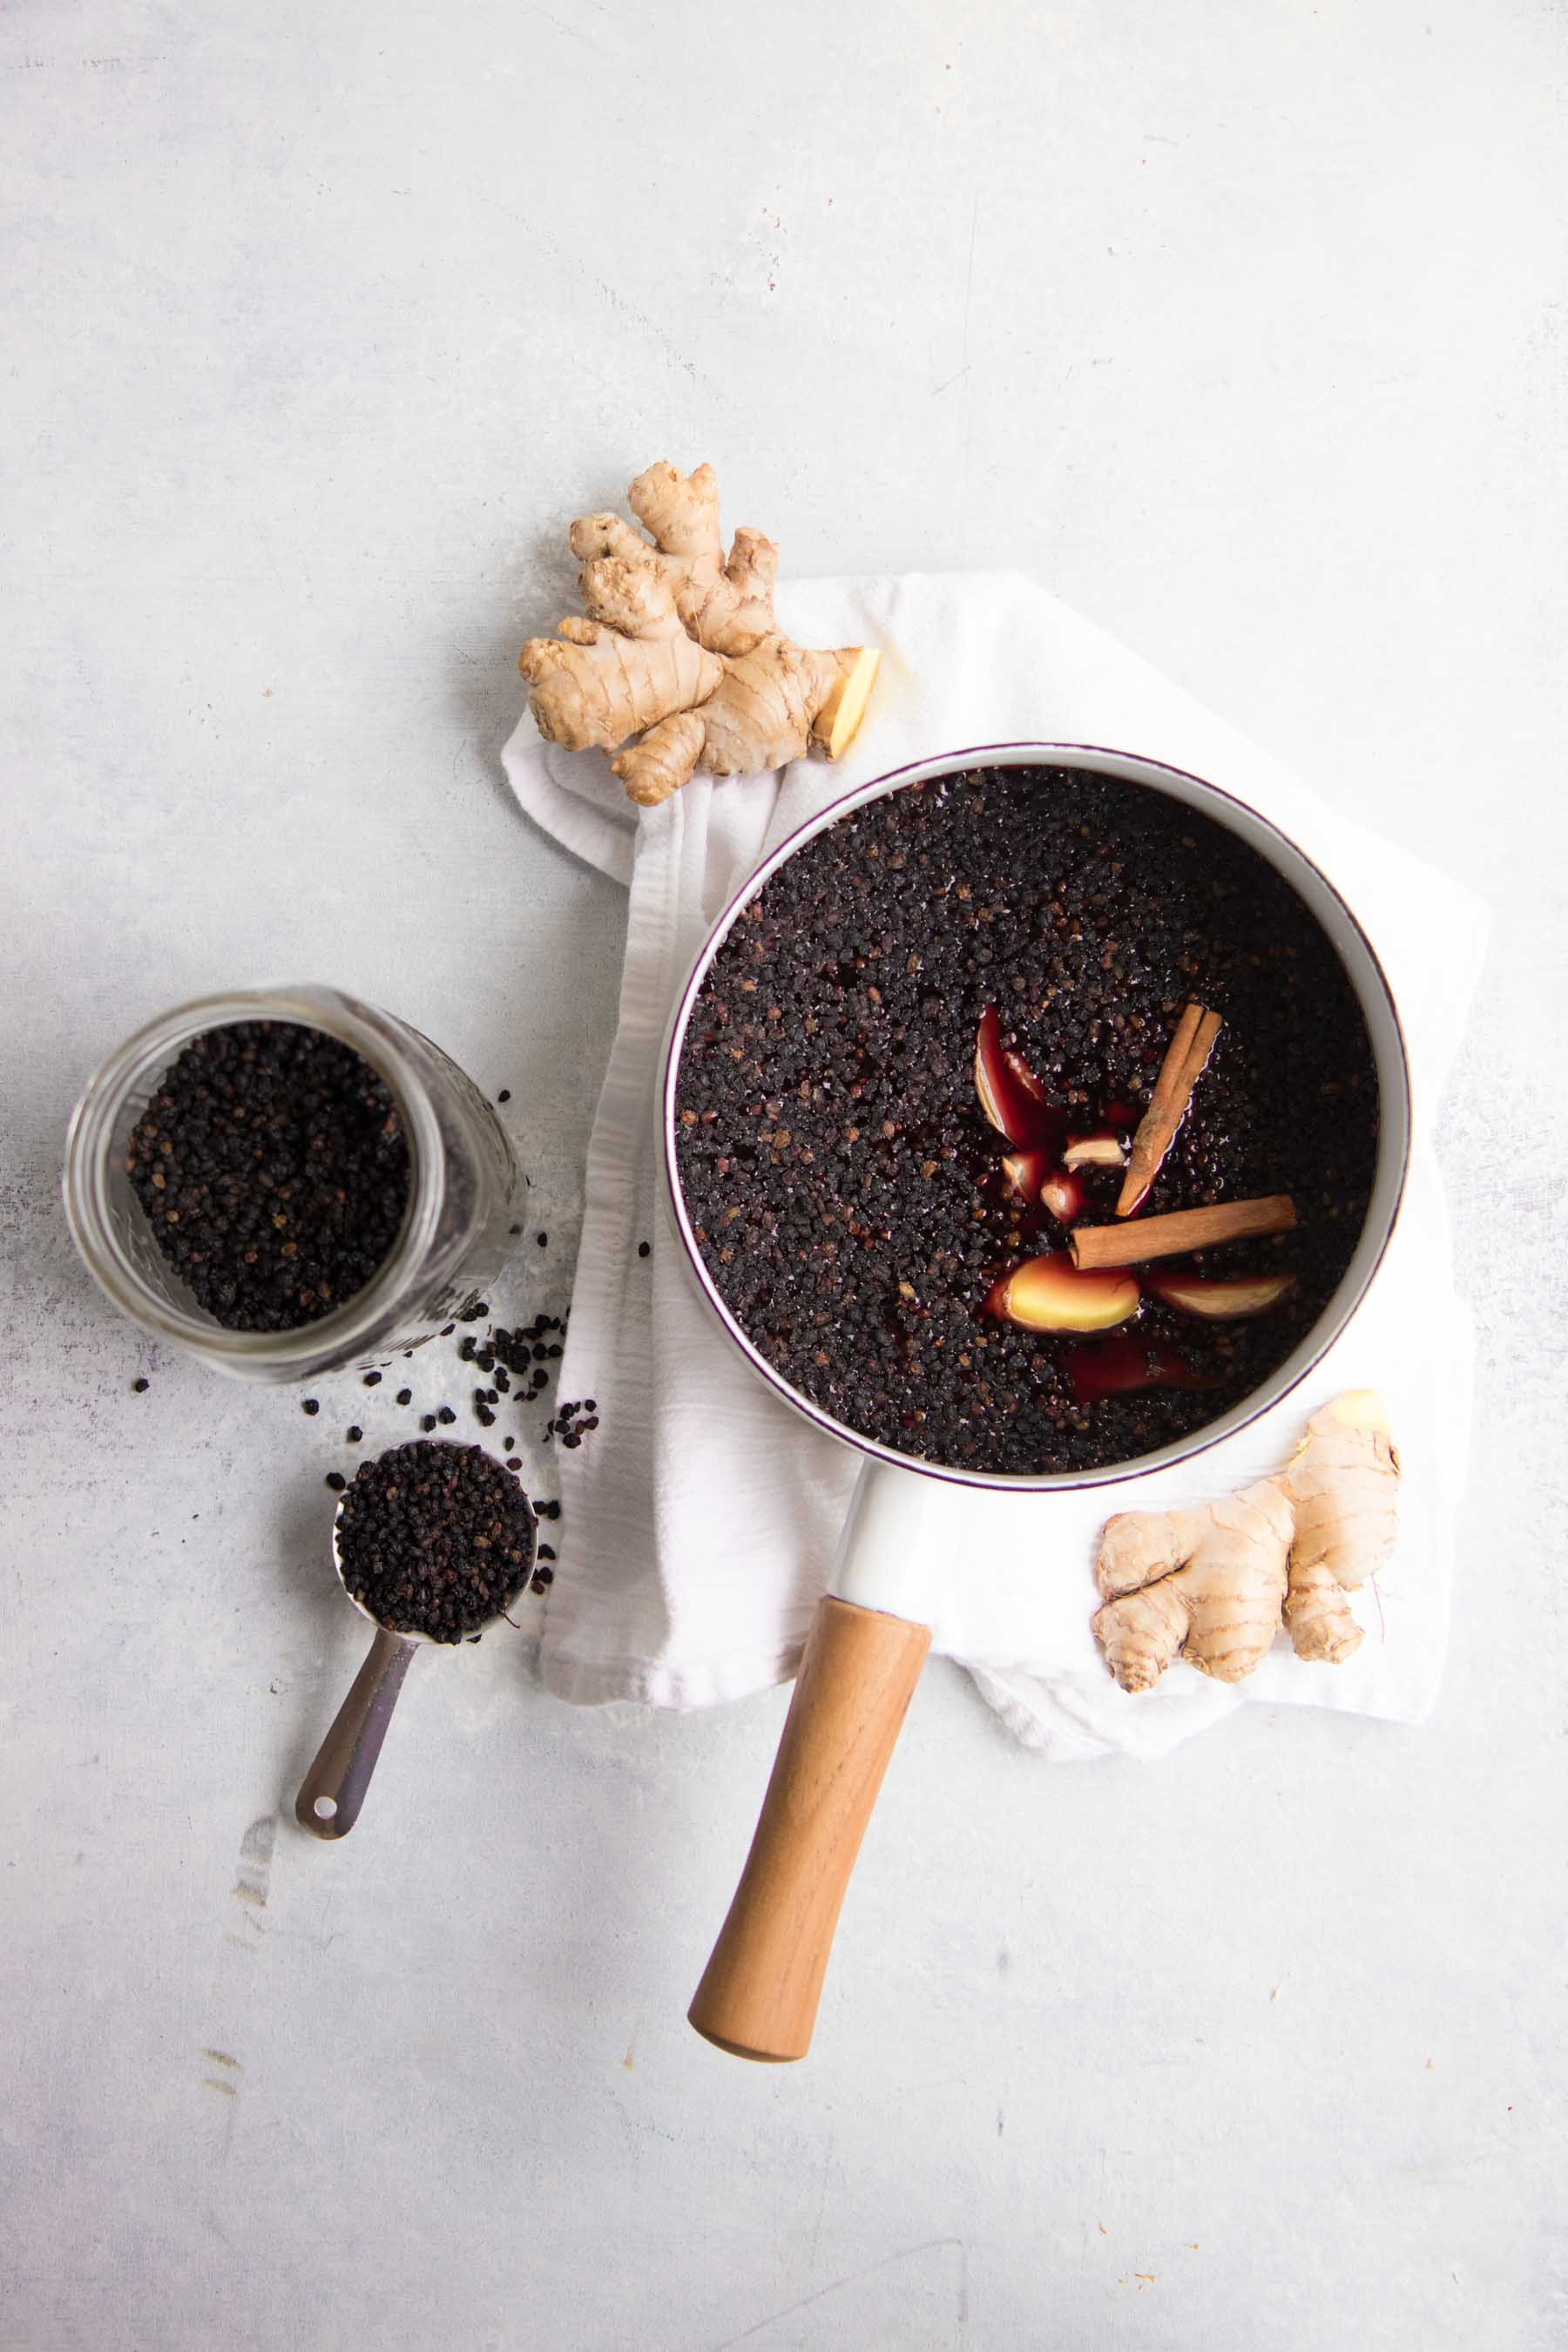 Elderberries sit in a wooden handled pot, surrounded by other ingredients for an elderberry syrup recipe.